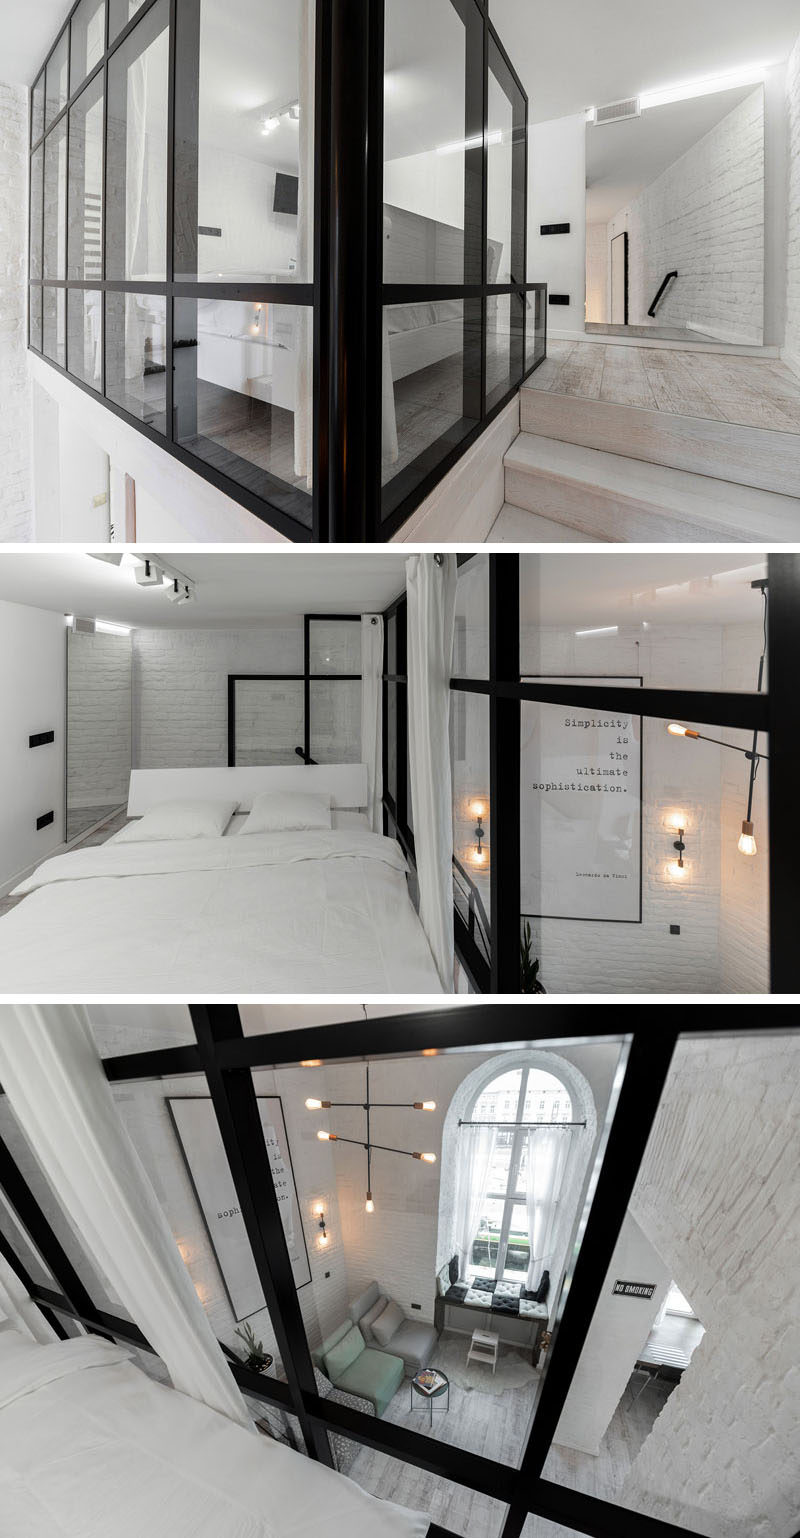 This modern mezzanine bedroom has a black-framed glass wall that overlooks the living room below. #Bedroom #ModernBedroom #GlassWall #MezzanineBedroom